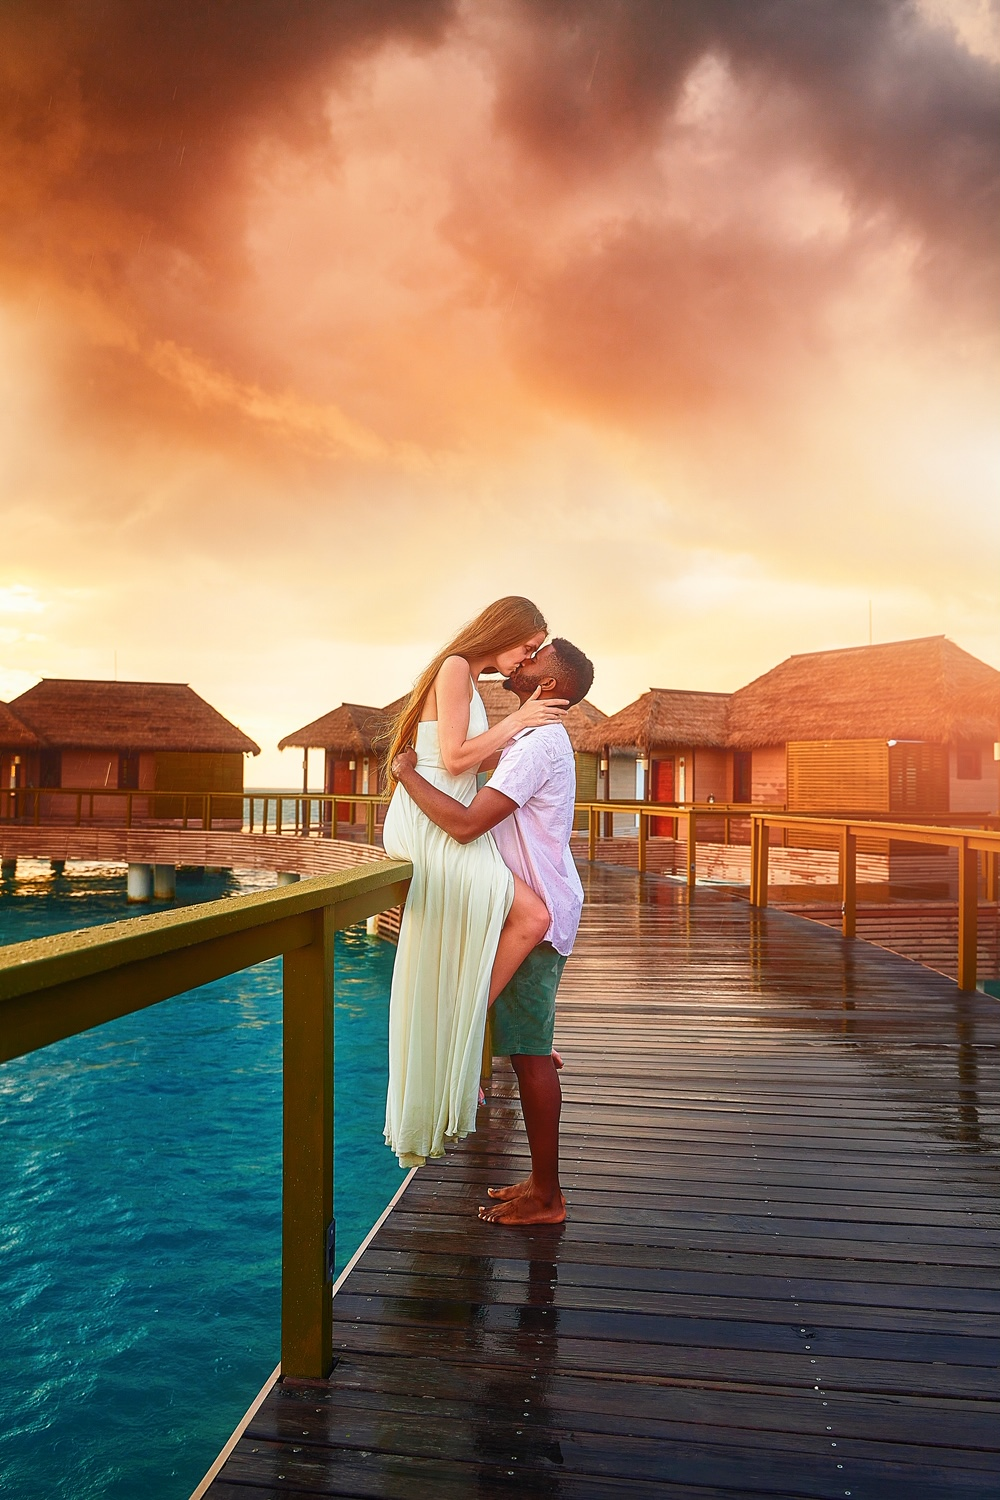 A couple kissing on a dock surrounded by overwater bungalows in Jamaica at sunset